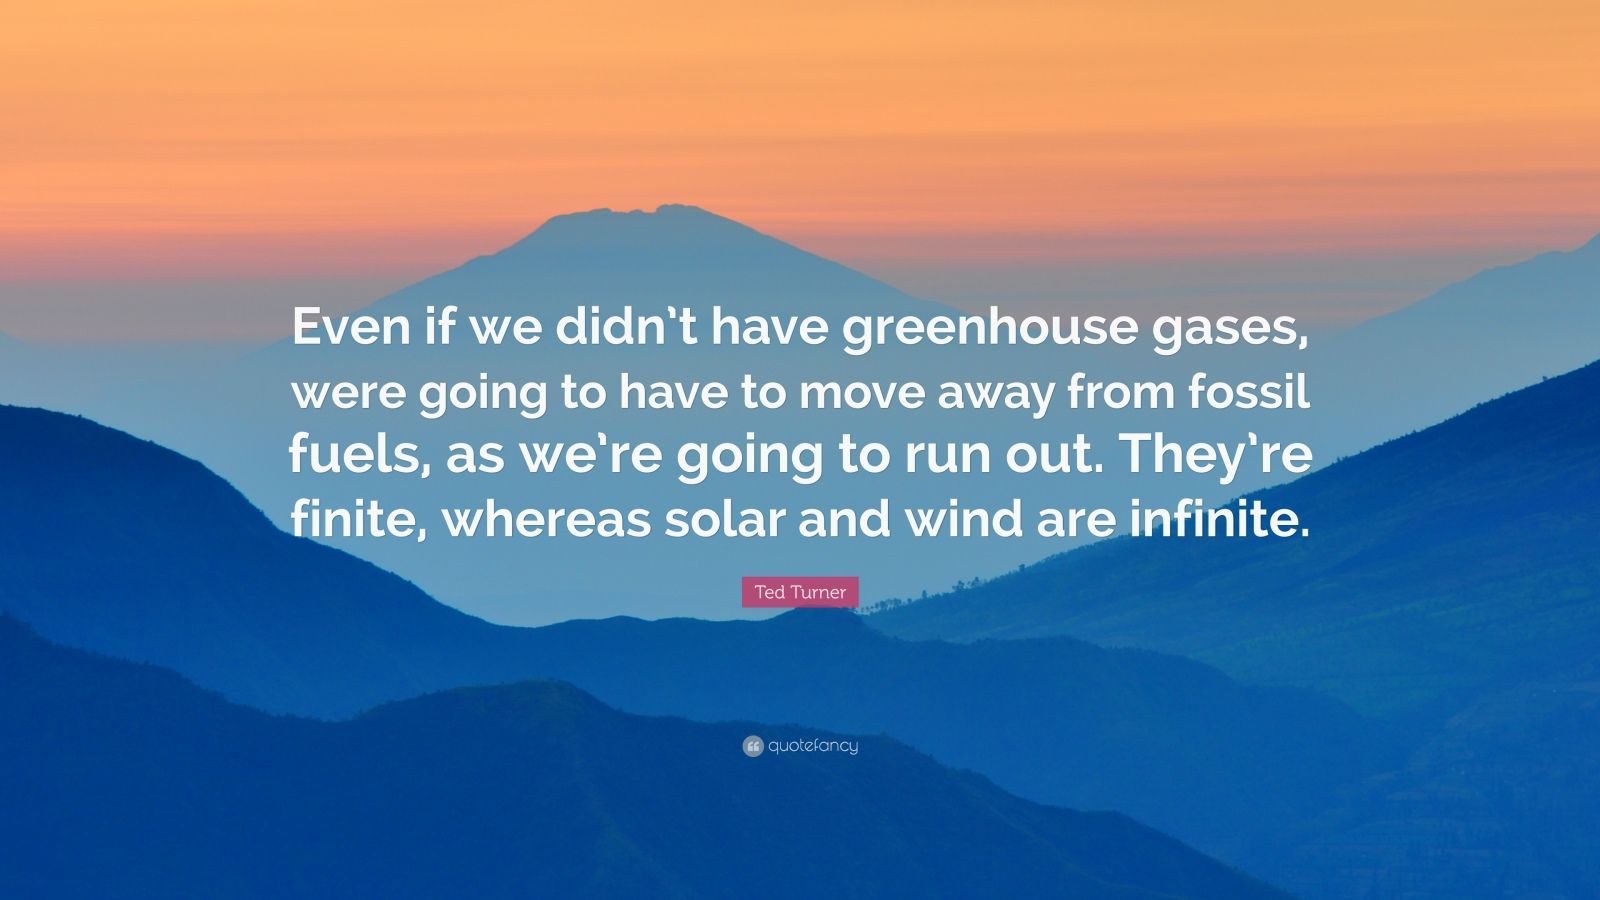 """Ted Turner Quote: """"Even if we didn't have greenhouse gases, were going to have to move away from fossil fuels, as we're going to run out. They're finite, whereas solar and wind are infinite."""""""